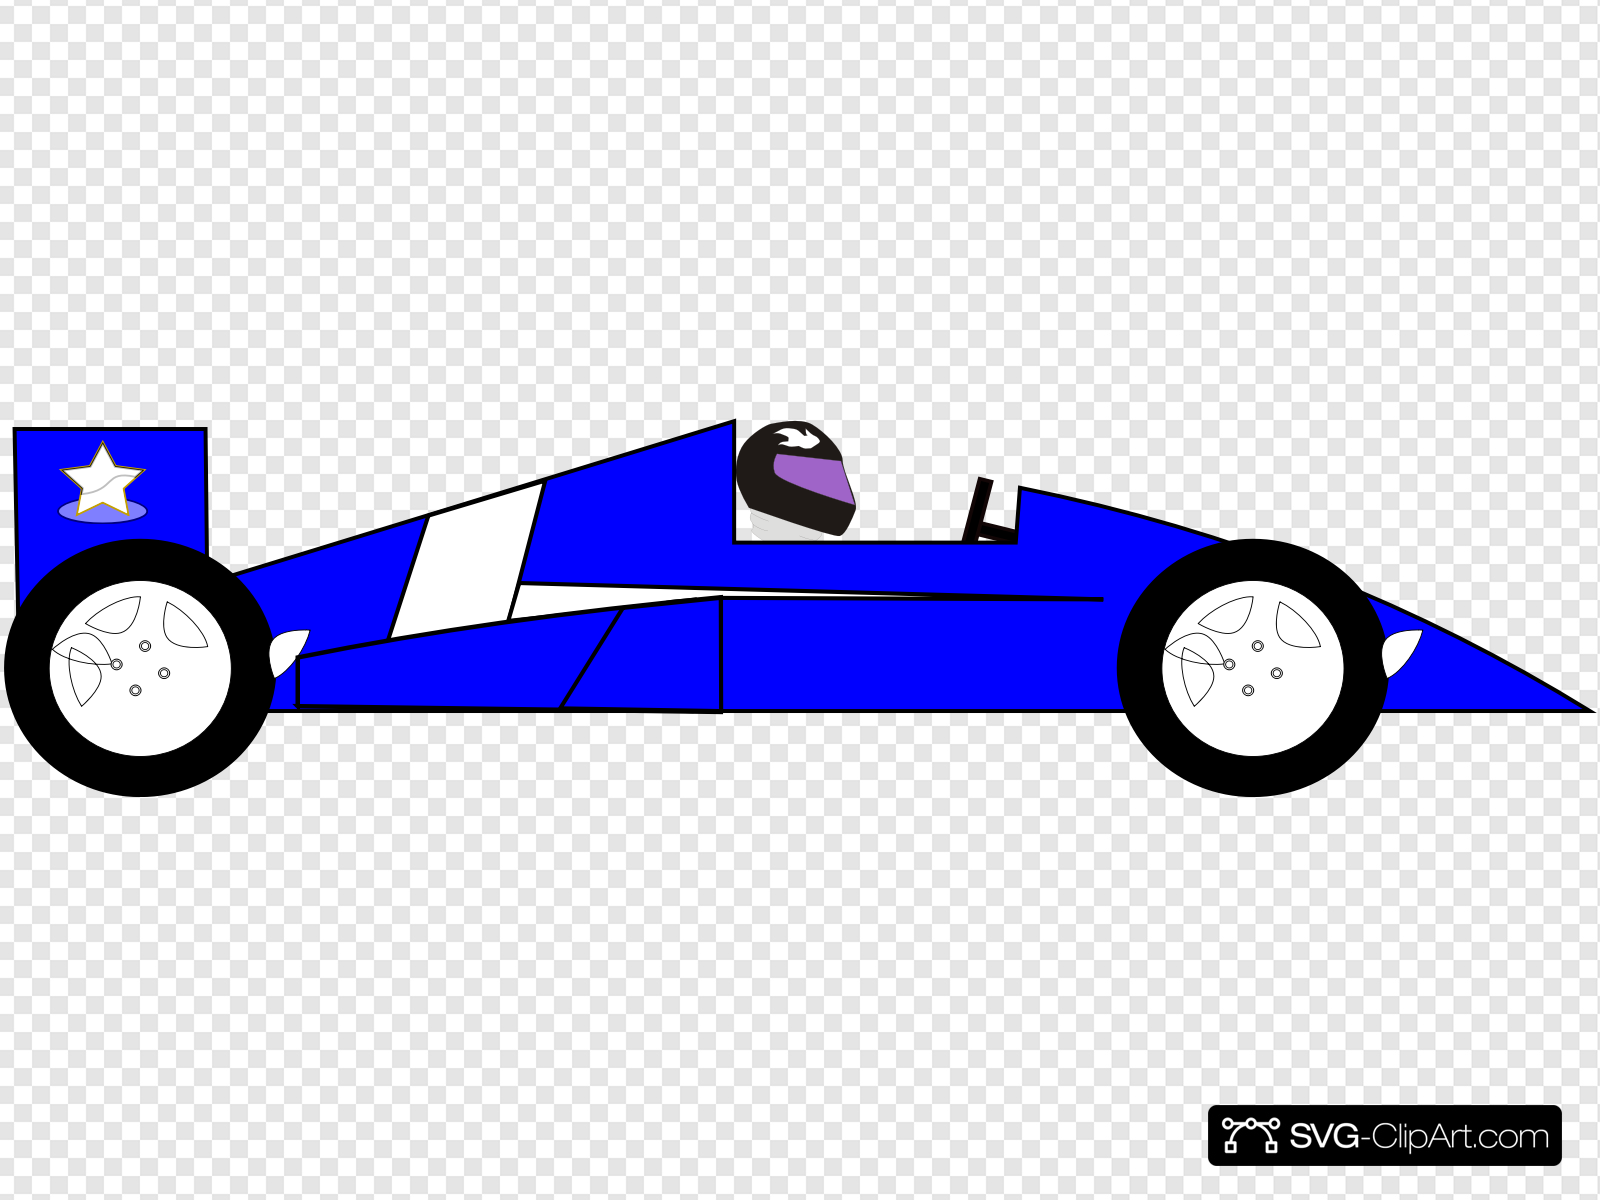 Blue Racecar Clip art, Icon and SVG.